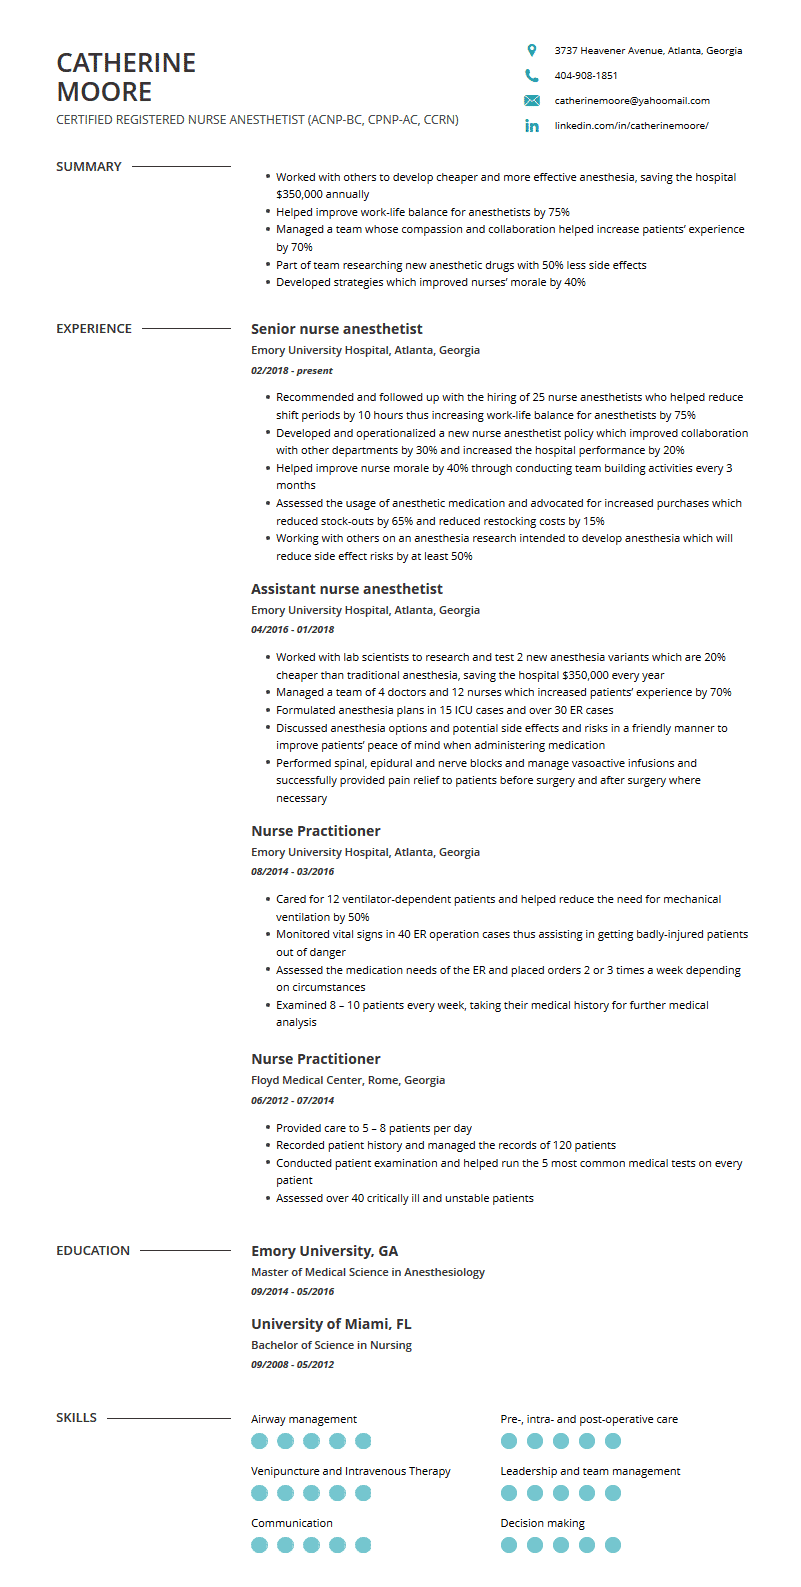 Nurse Practitioner Resume: Examples, Template, and Resume ...